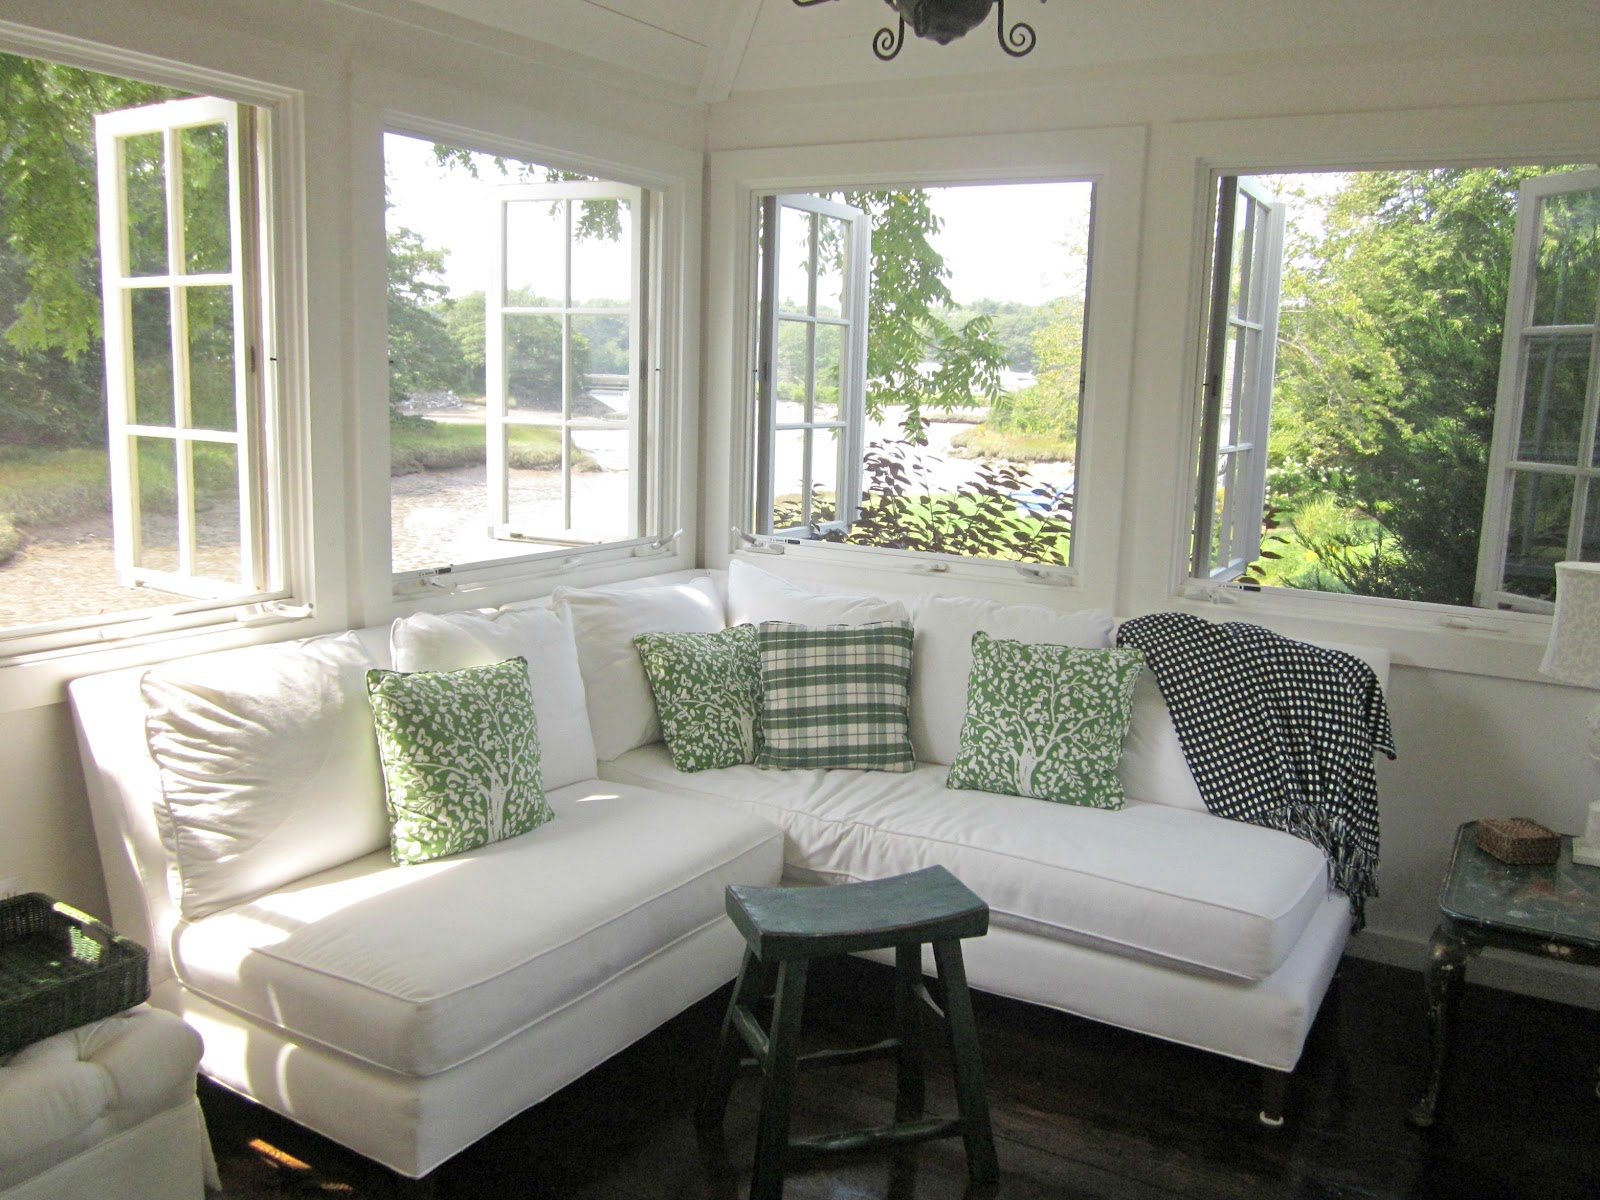 rental beach at cottage vacation homeaway maine willard co a birdhouse style the